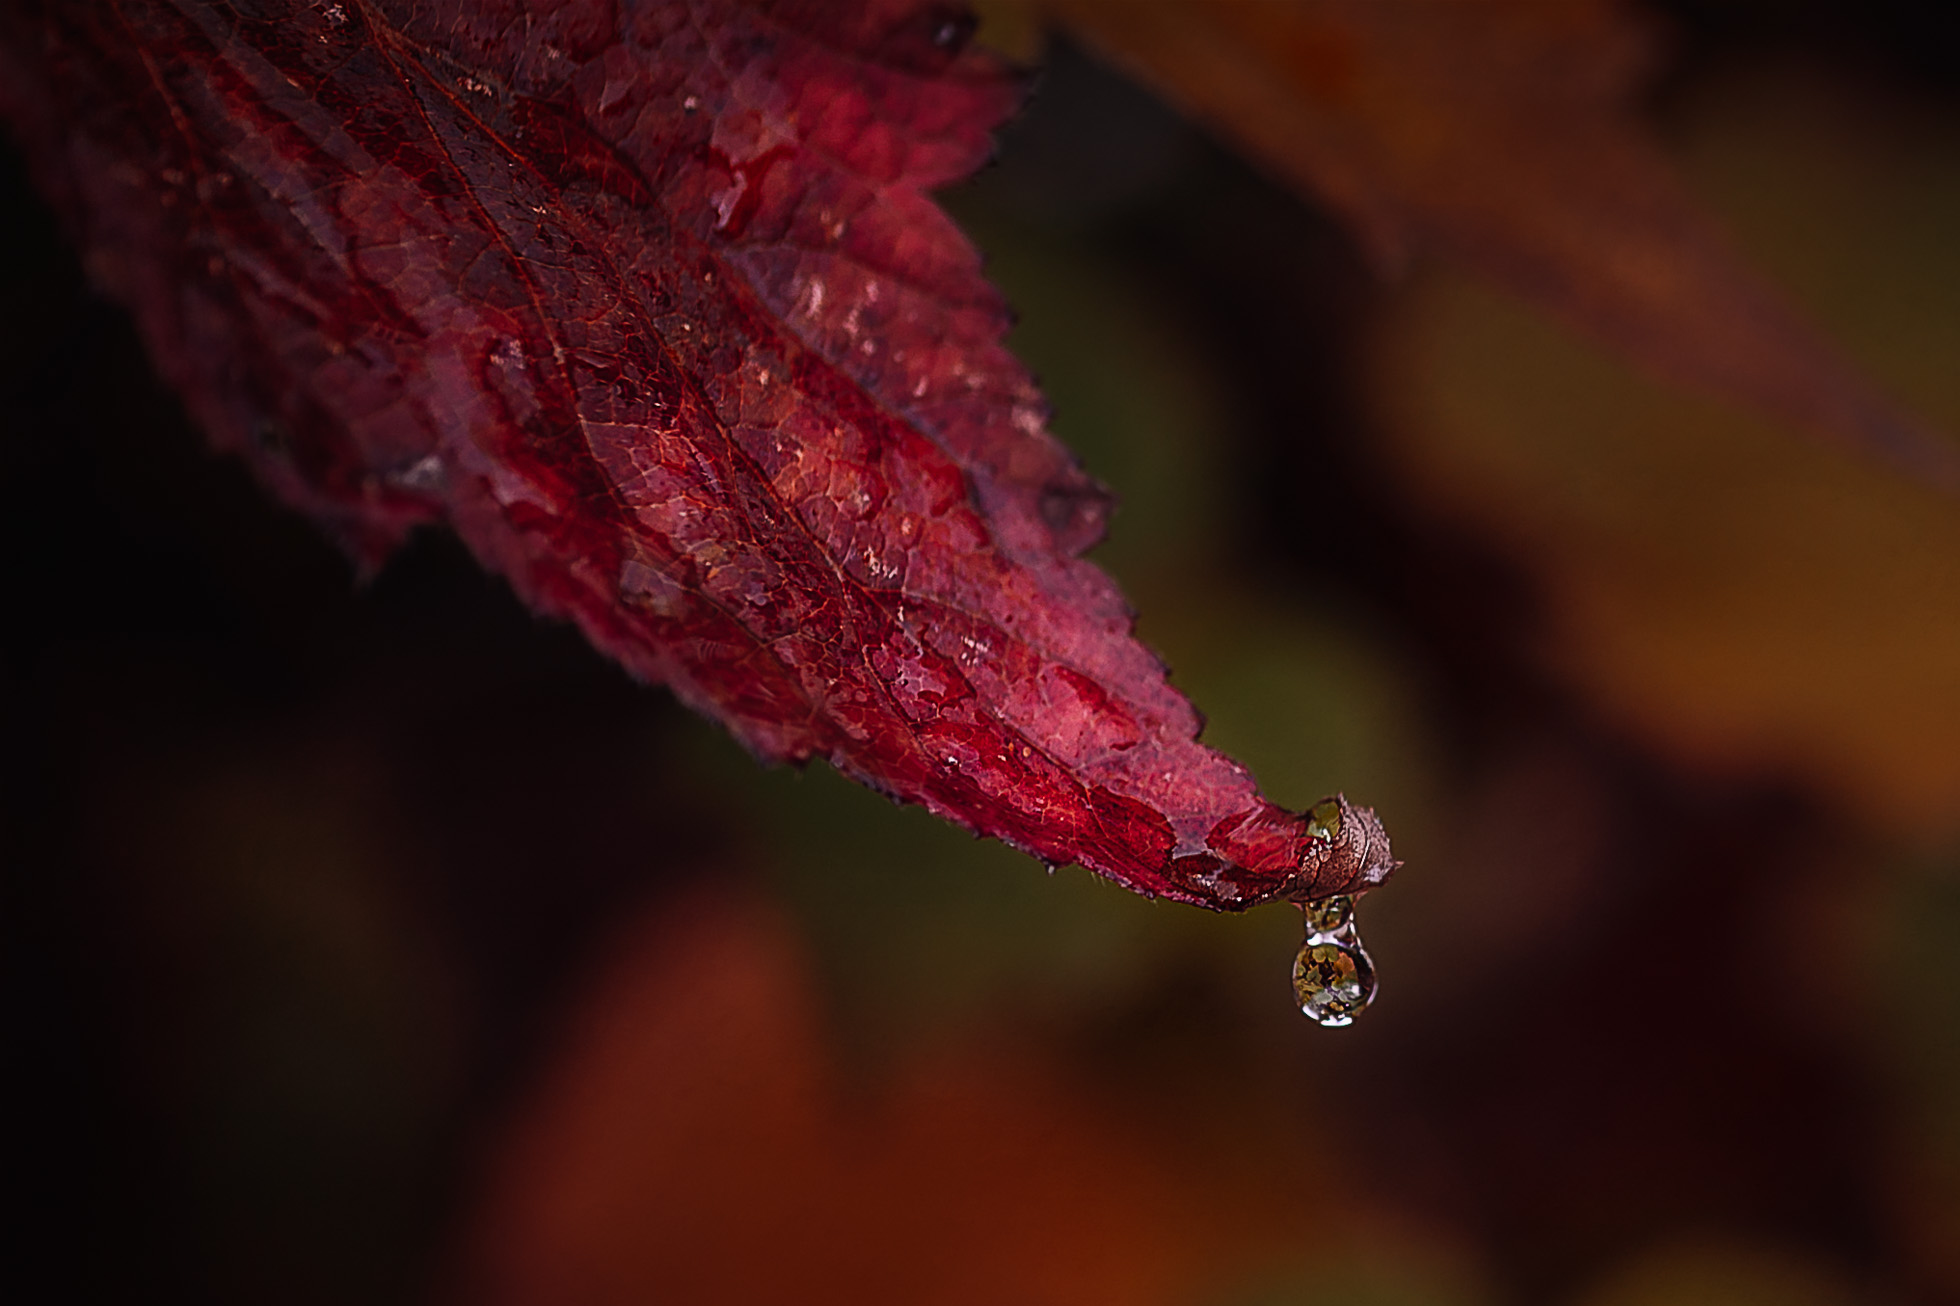 A single water drops from a leaf